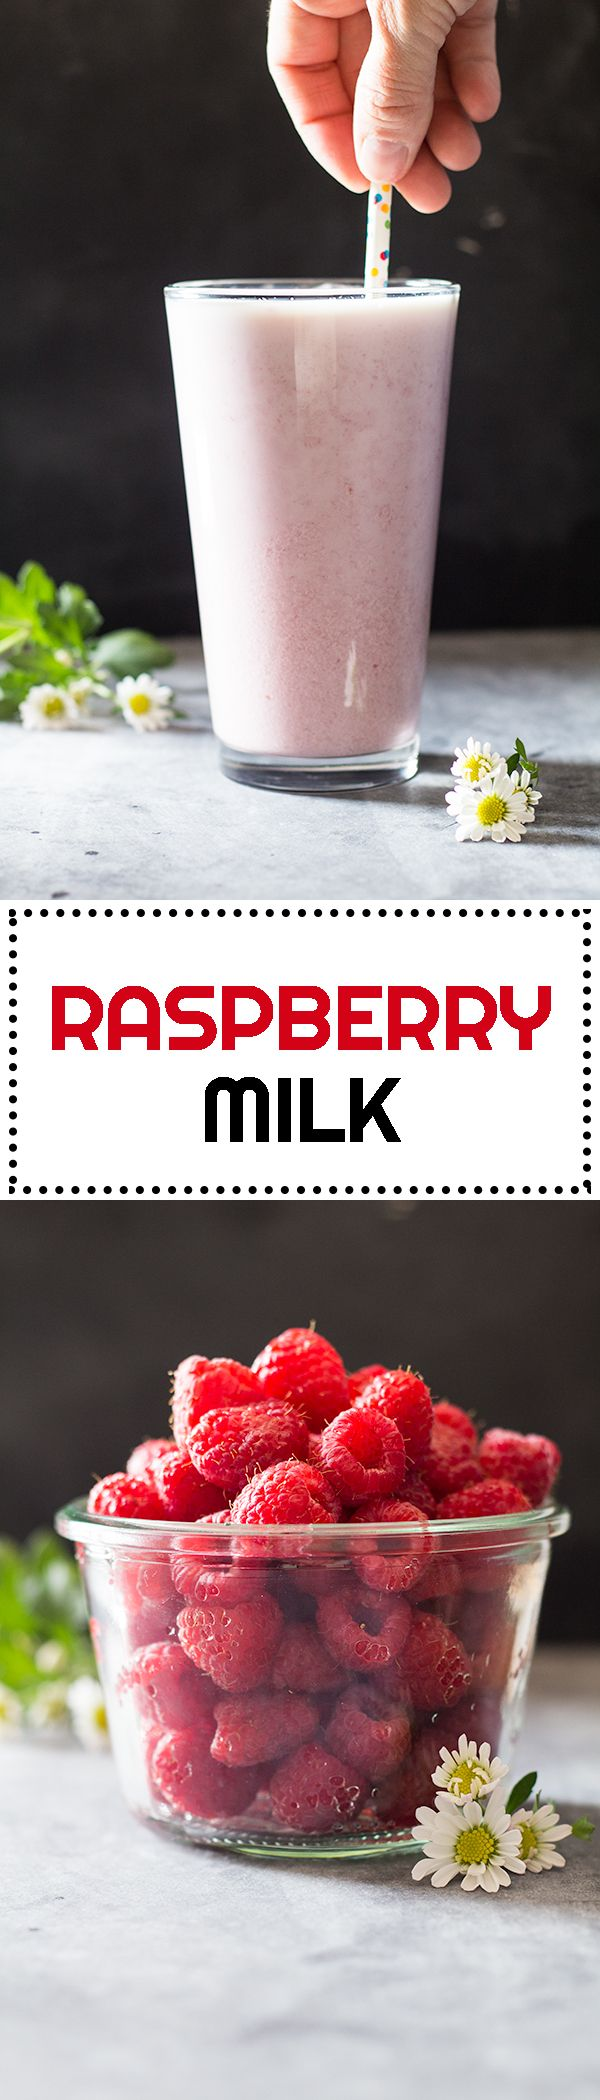 Hot chocolate milk doesn't fit summer, does it? A quick and easy refreshing Raspberry Milk does though. Great snack for children and adults!